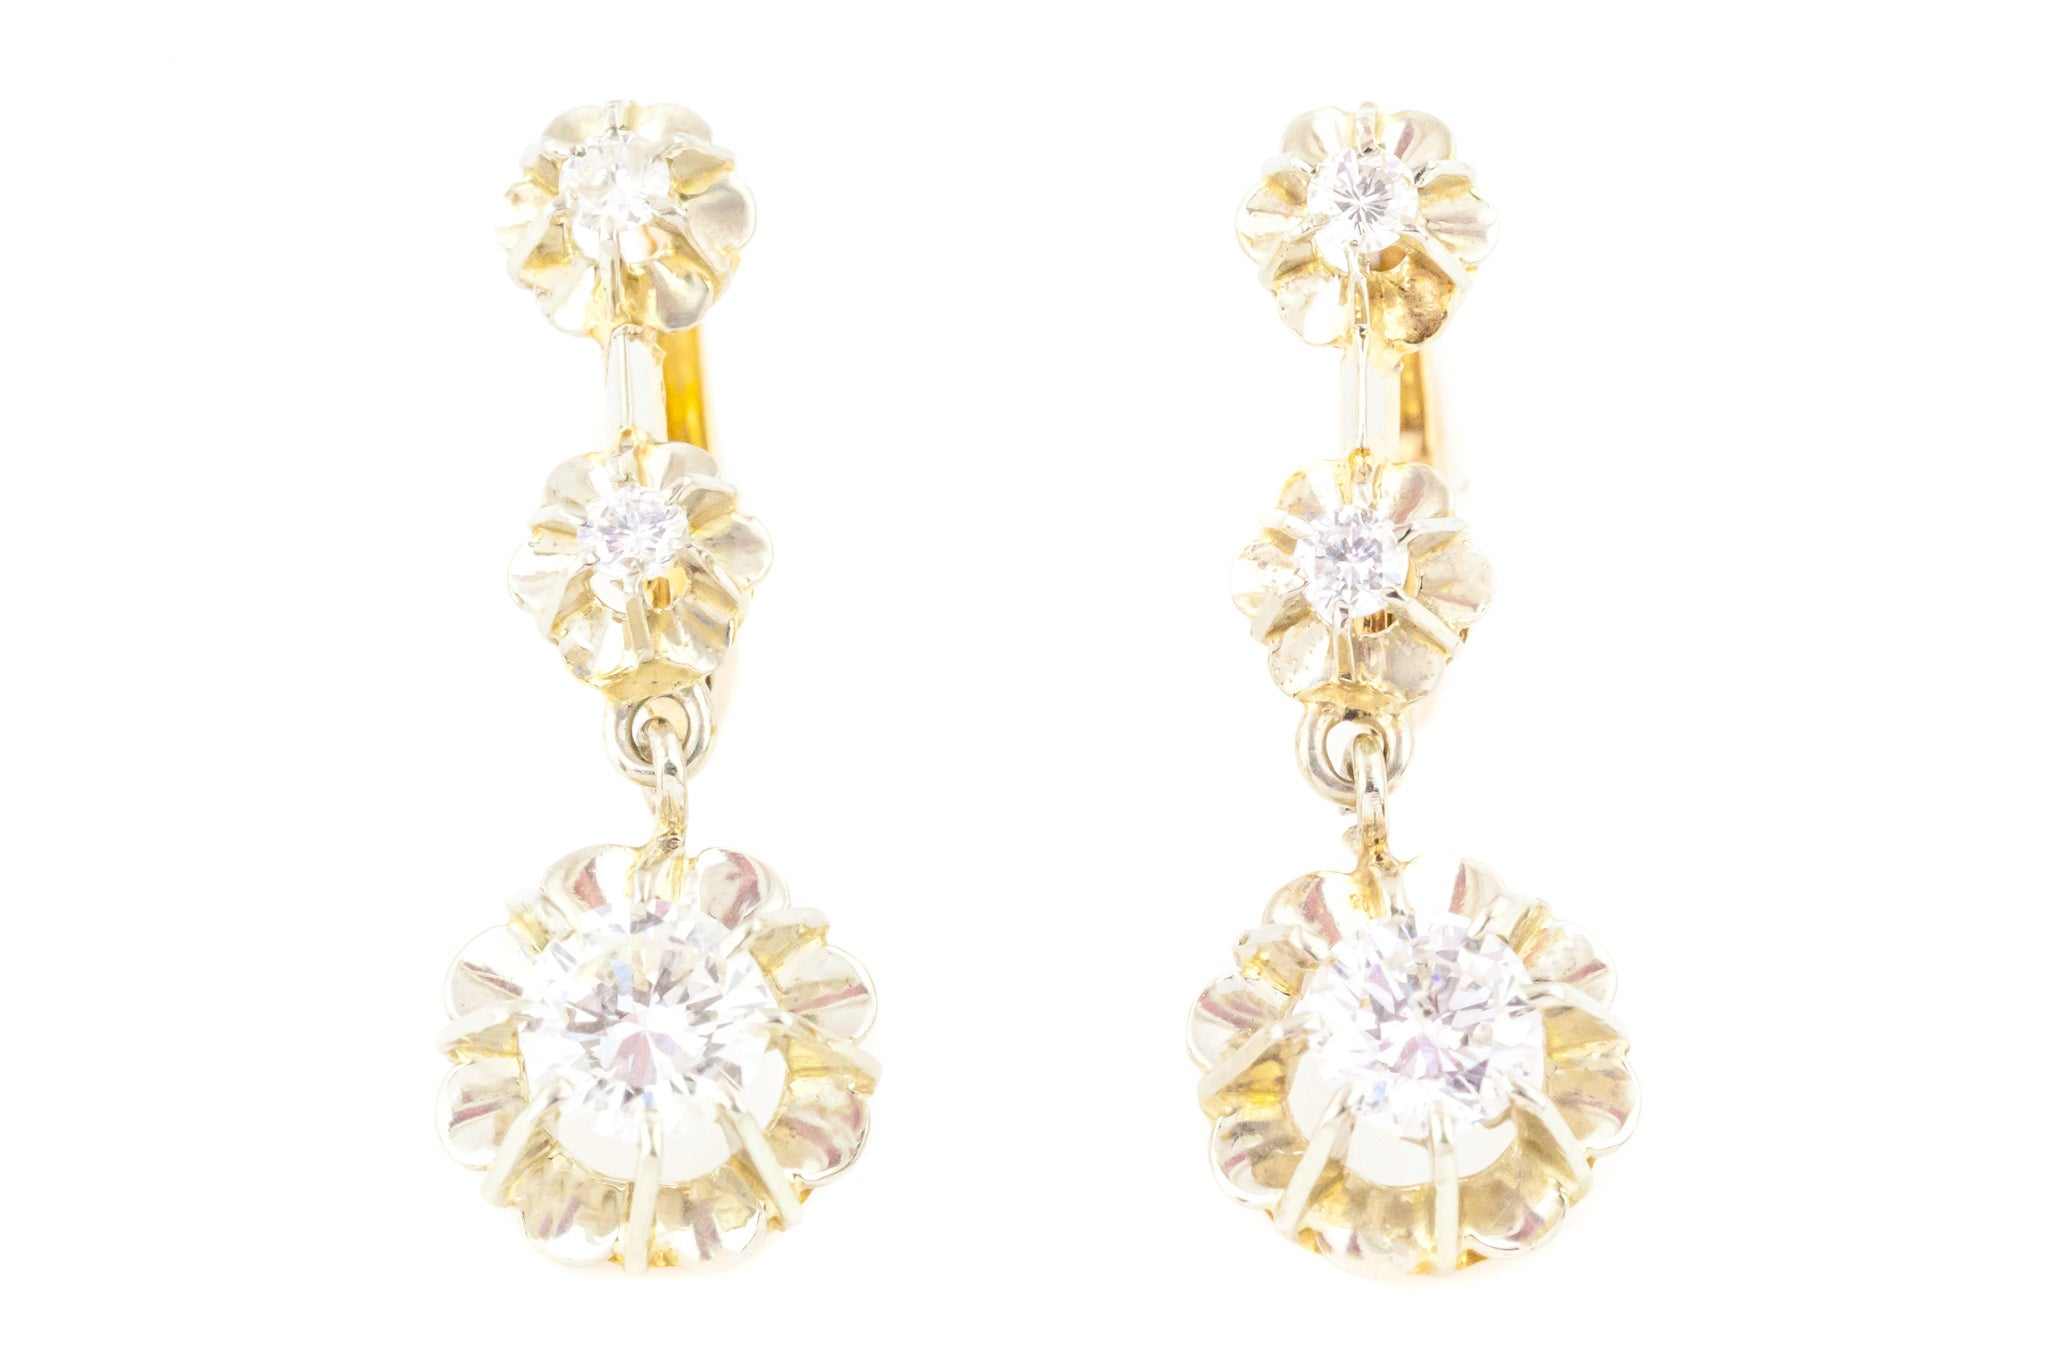 644fb02e96ea4a 1.0ct Antique French Diamond Drop Earrings in 18ct Gold - Lever Backs